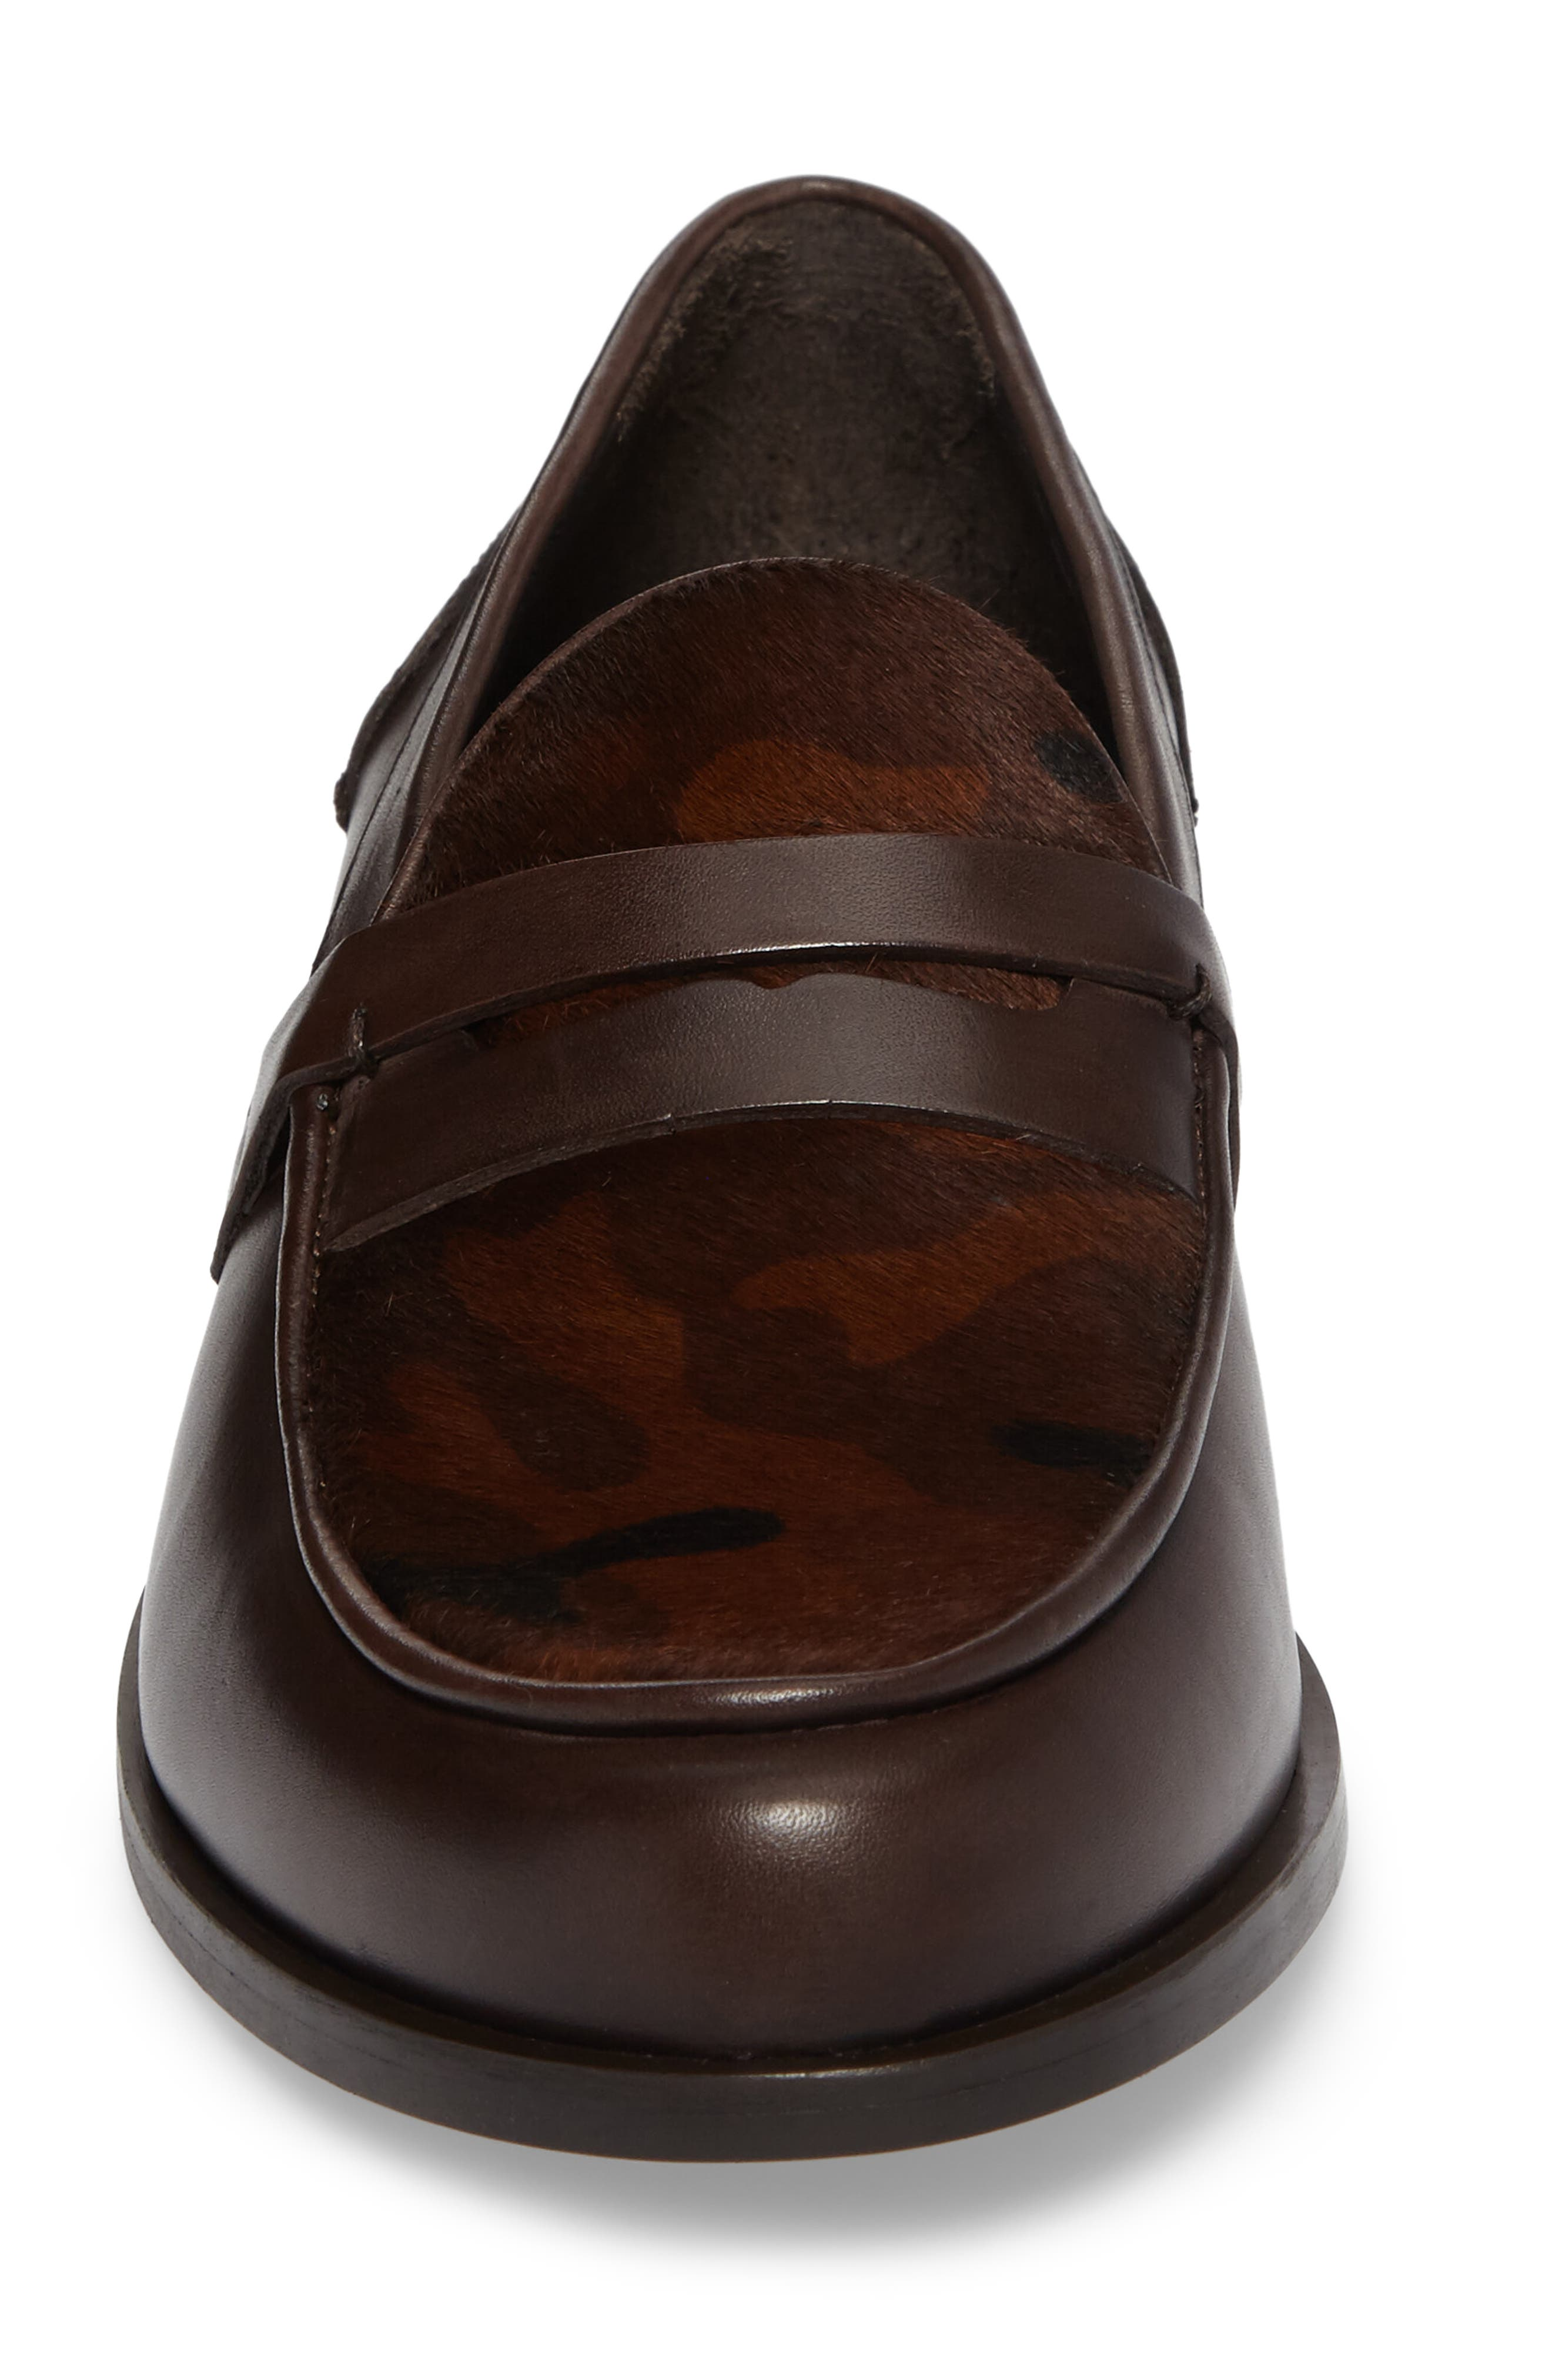 Alternate Image 4  - Donald J Pliner Sawyer Penny Loafer (Men)